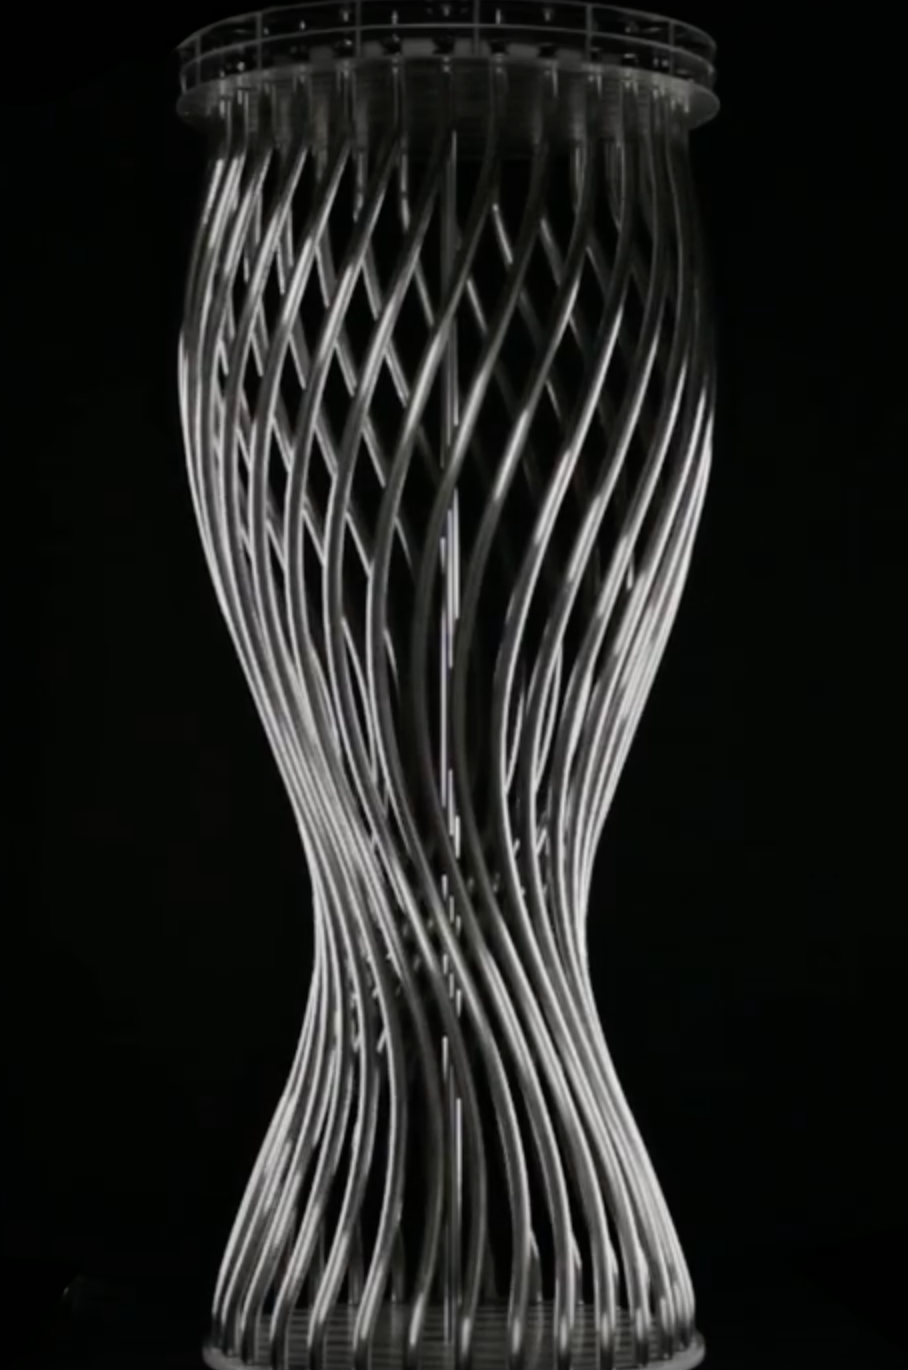 Spiral, 2011. Stainless steel.